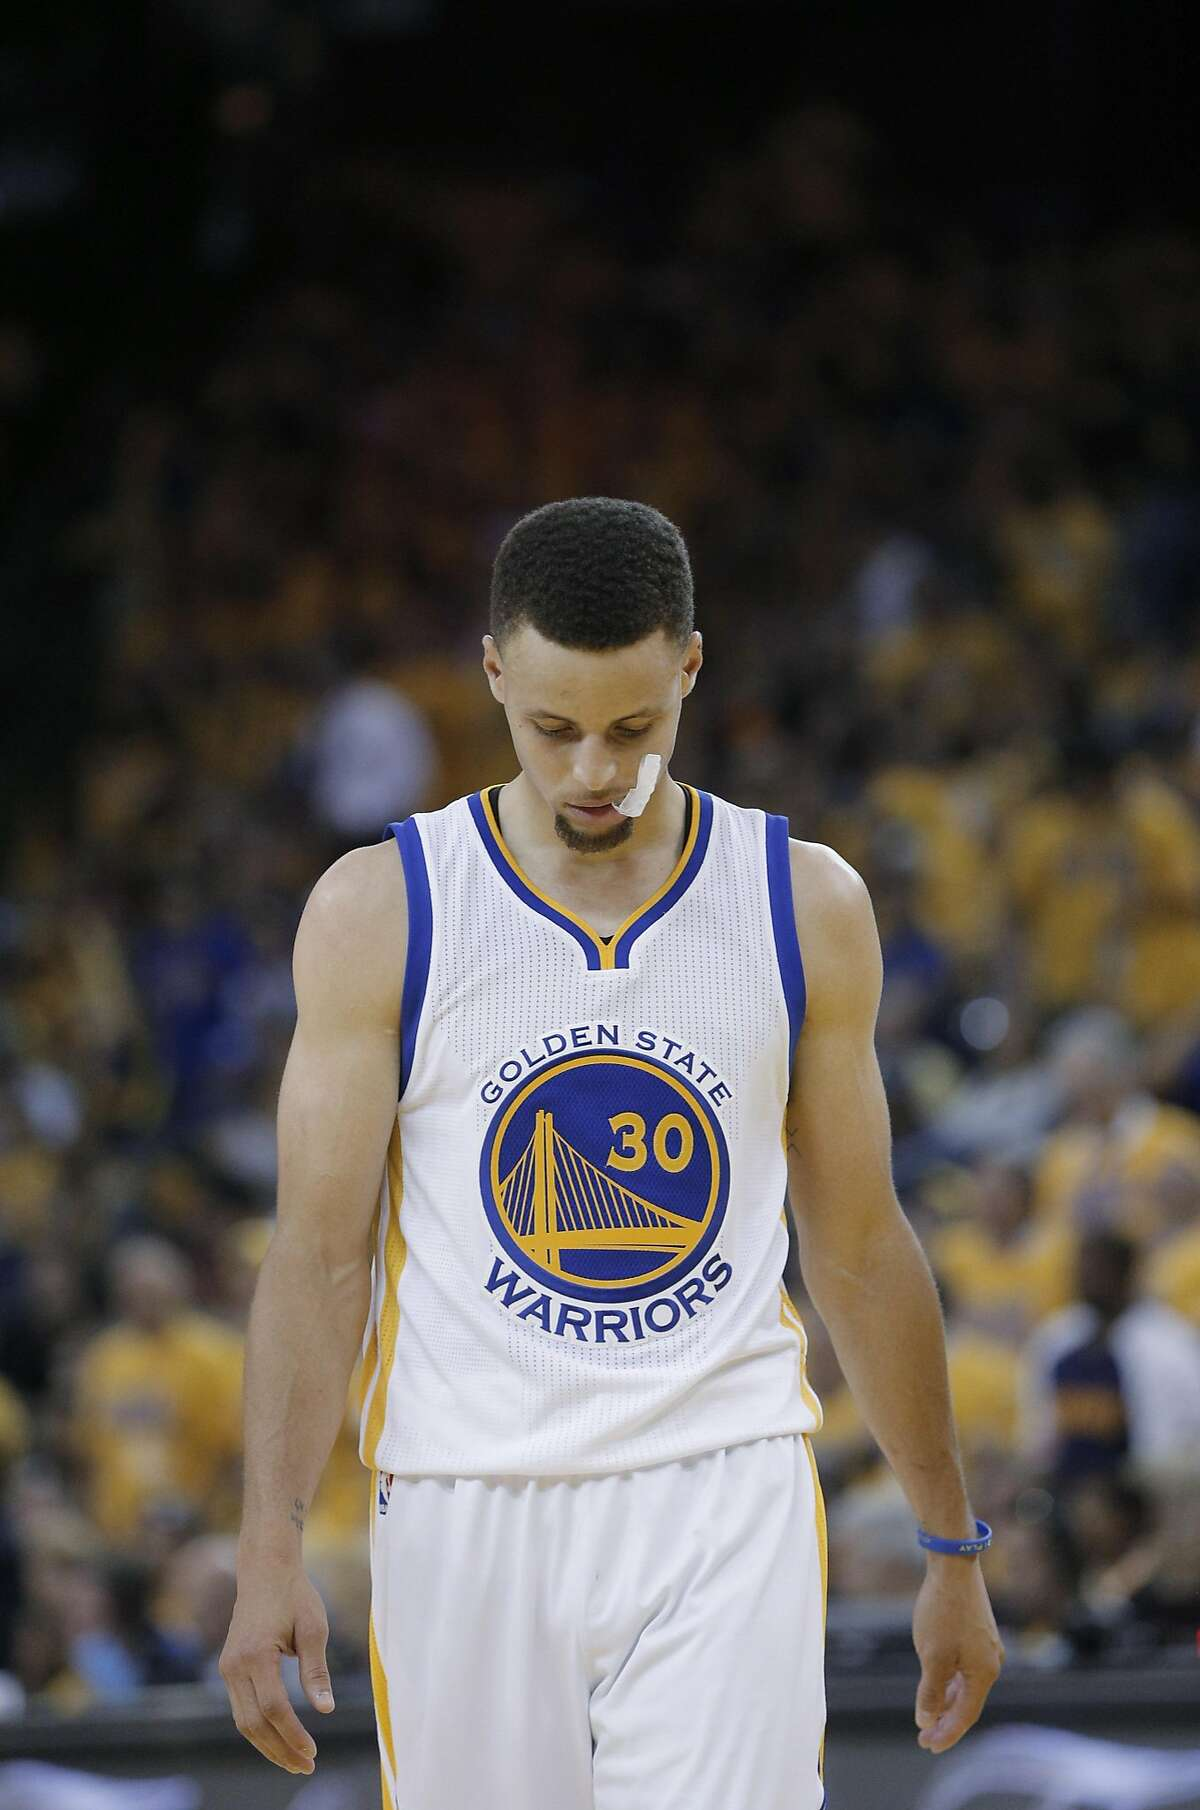 Stephen Curry (30) walks back up the court as the team trails in the fourth quarter as the Golden State Warriors played the Cleveland Cavaliers in Game 5 of the NBA Finals at Oracle Arena in Oakland, Calif., on Monday, June 13, 2016. The Cavaliers defeated the Warriors 112-97.